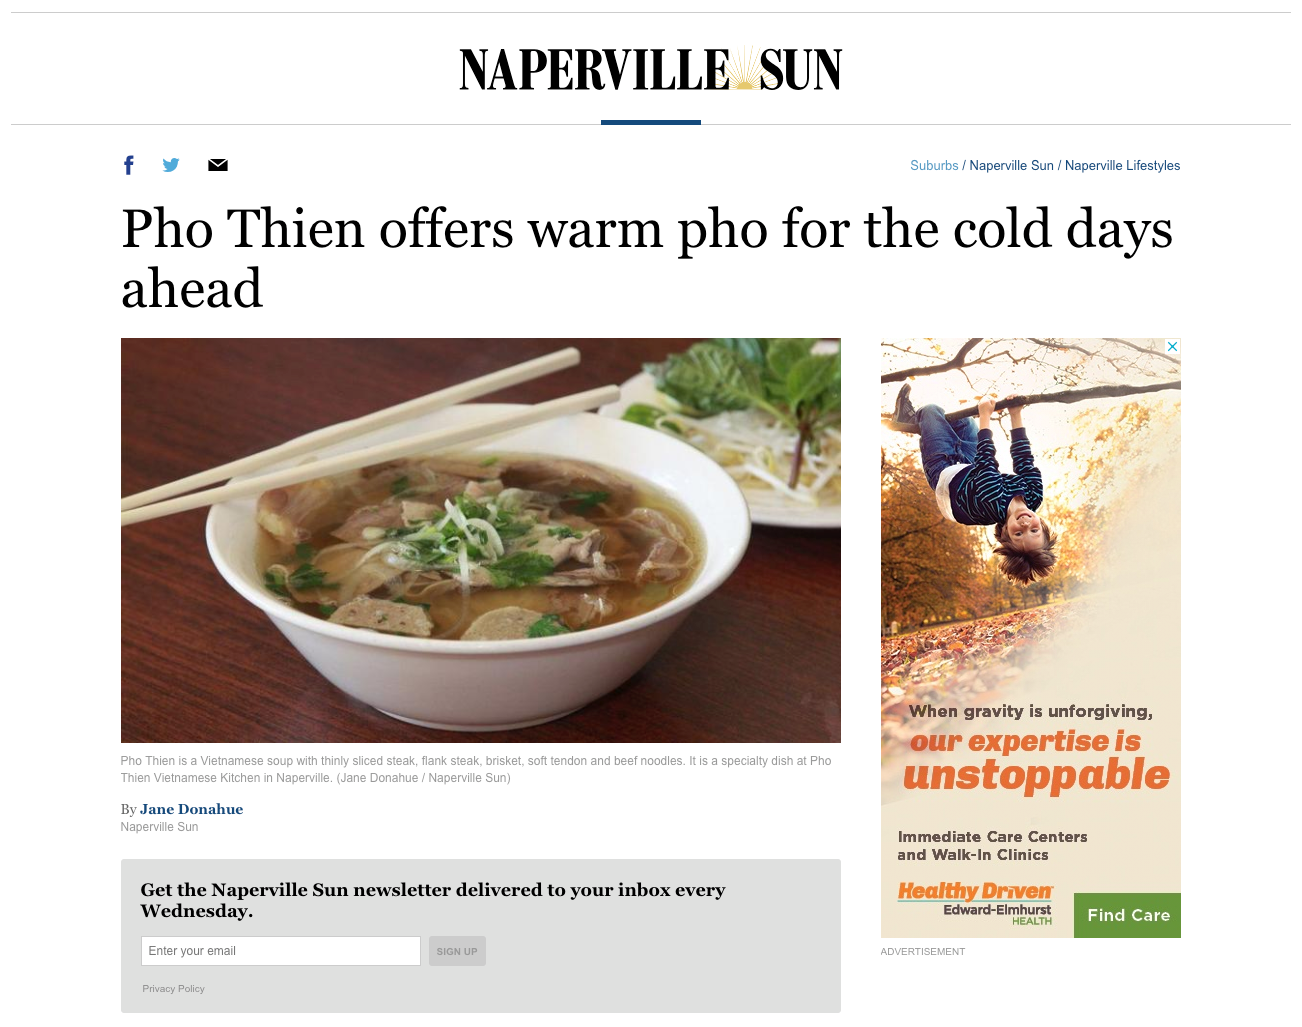 Thank you Jane Donahue and the Naperville Sun for the recent article!  I hope people will think of us and our Pho on the cold winter days.    Naperville Sun 11/26/18